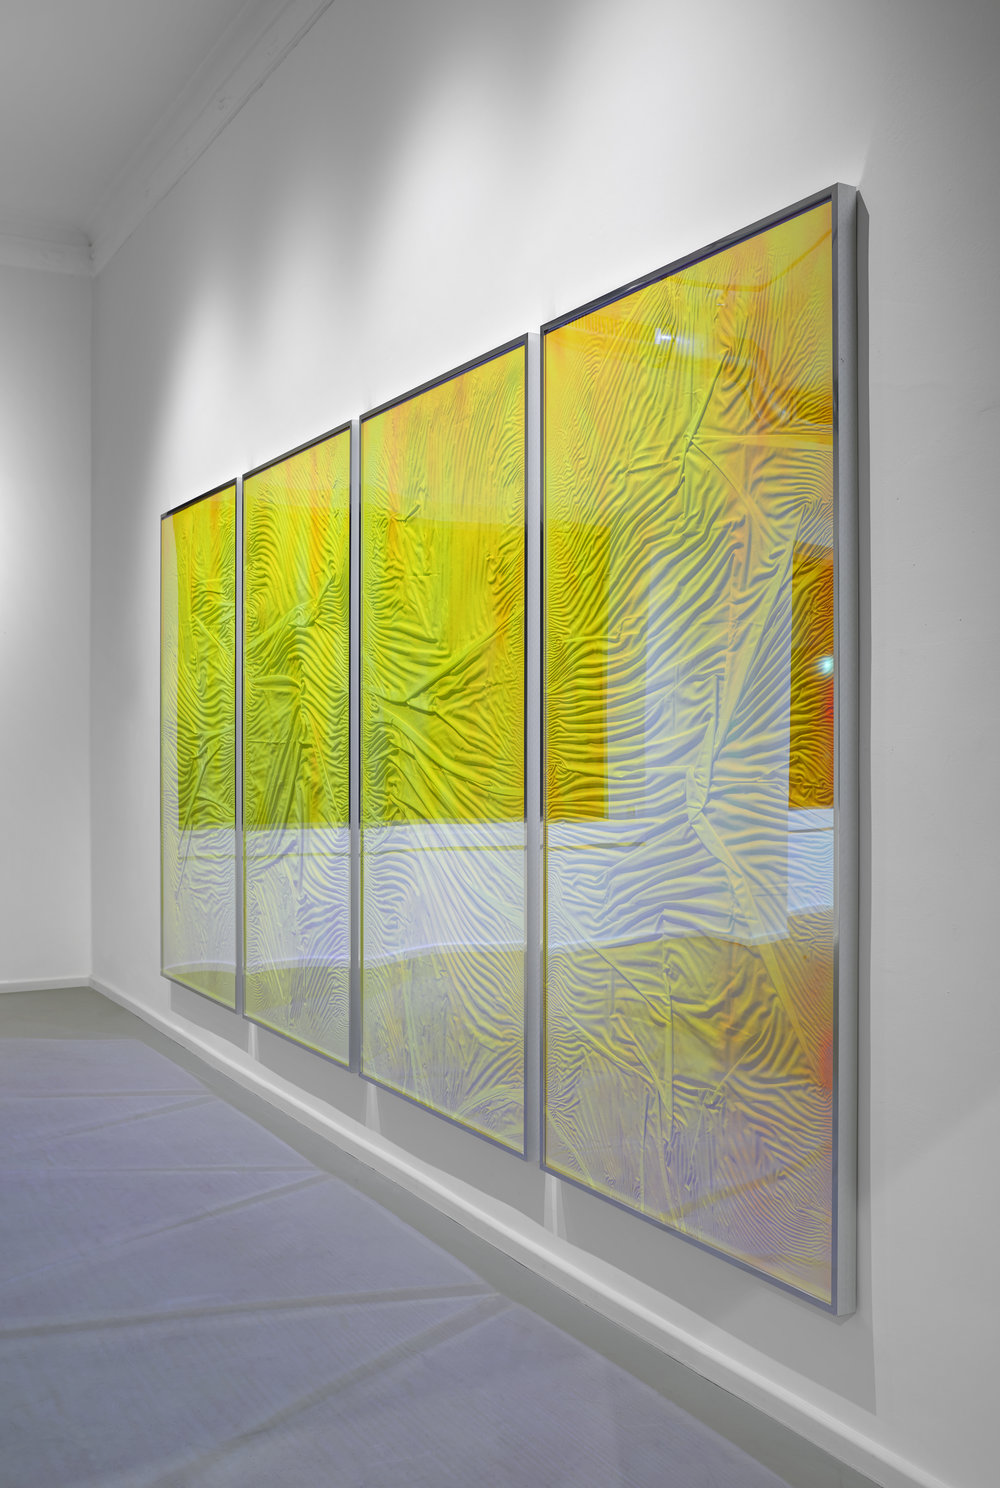 L'apparition - Installation view (2014) Linen on wood beneath Radiant Plexiglas, aluminium frame structure.